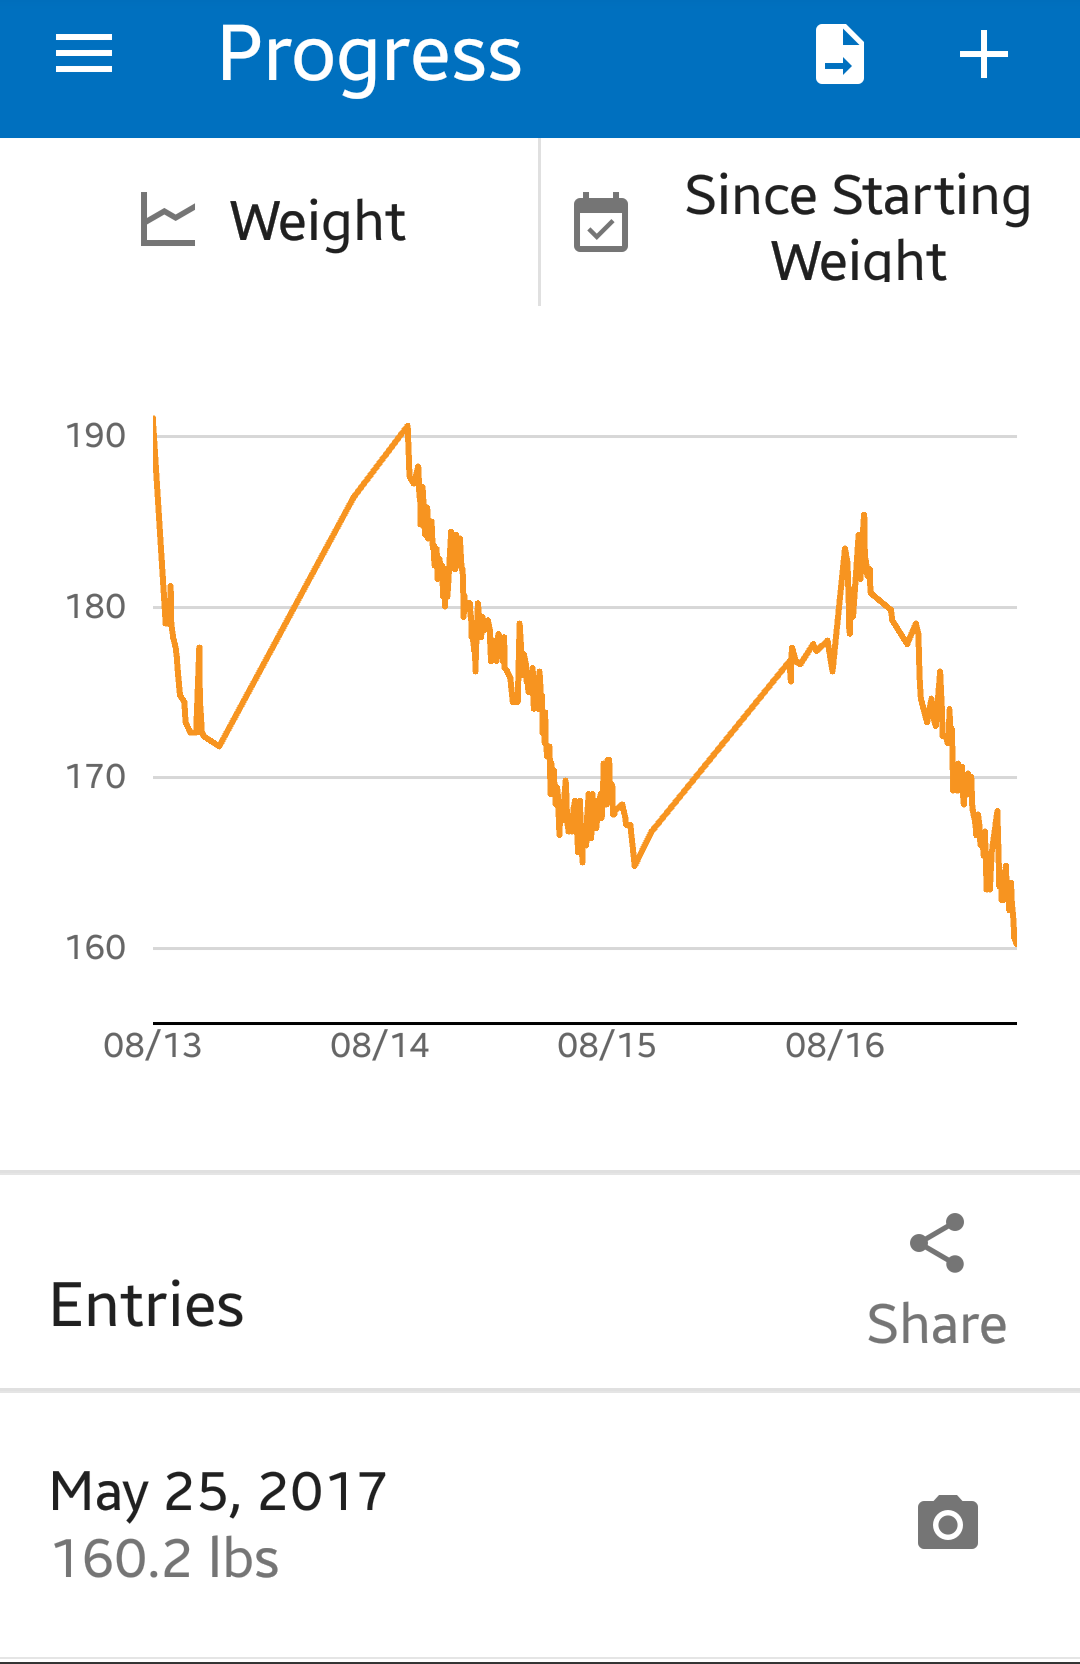 [Image] Never give up! Even if it takes years, never give up! *graph is my weight loss over 3 years time. Never give up! YOU CAN DO IT!